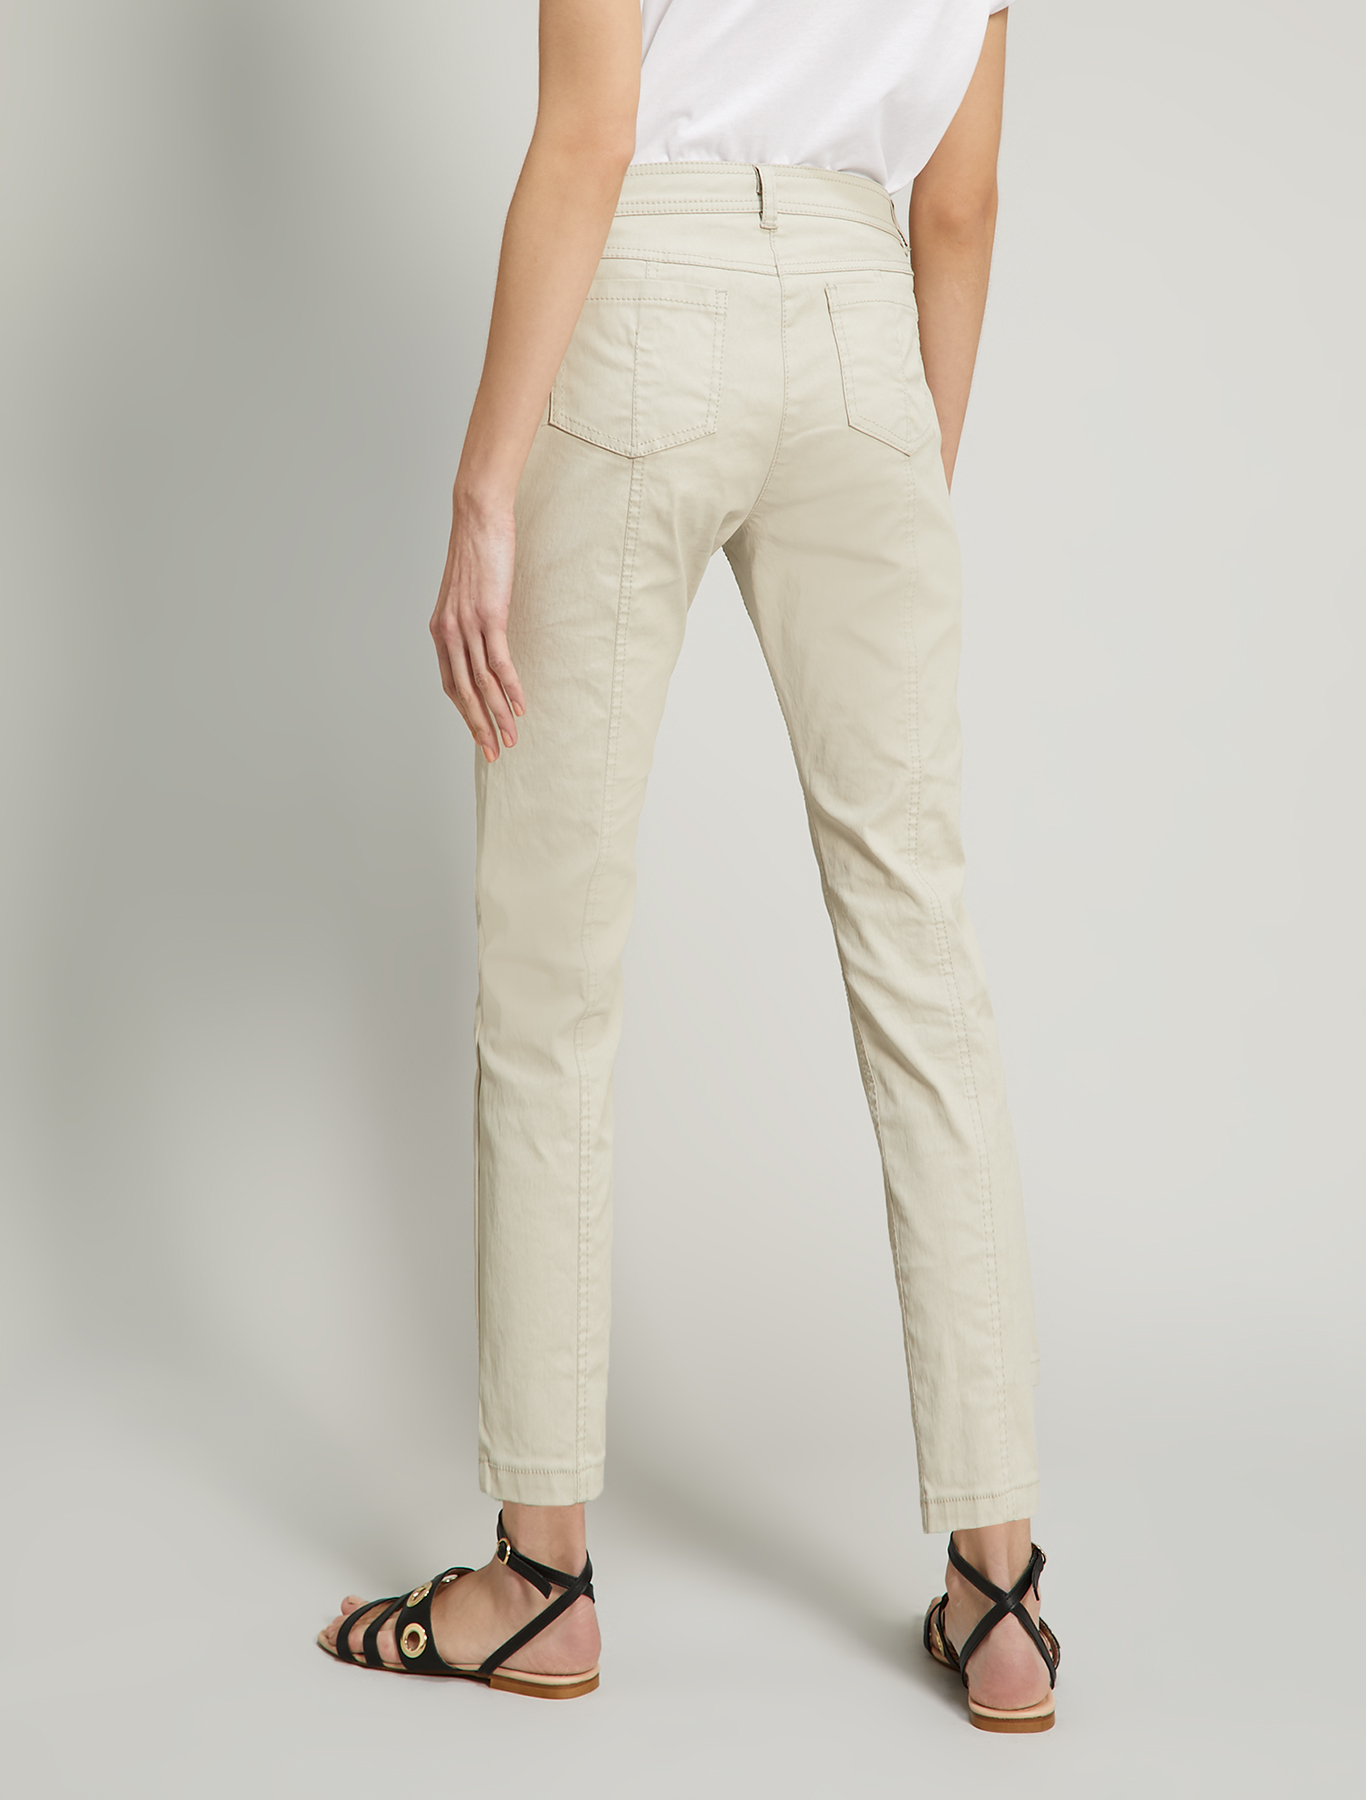 Cotton satin trousers - beige - pennyblack